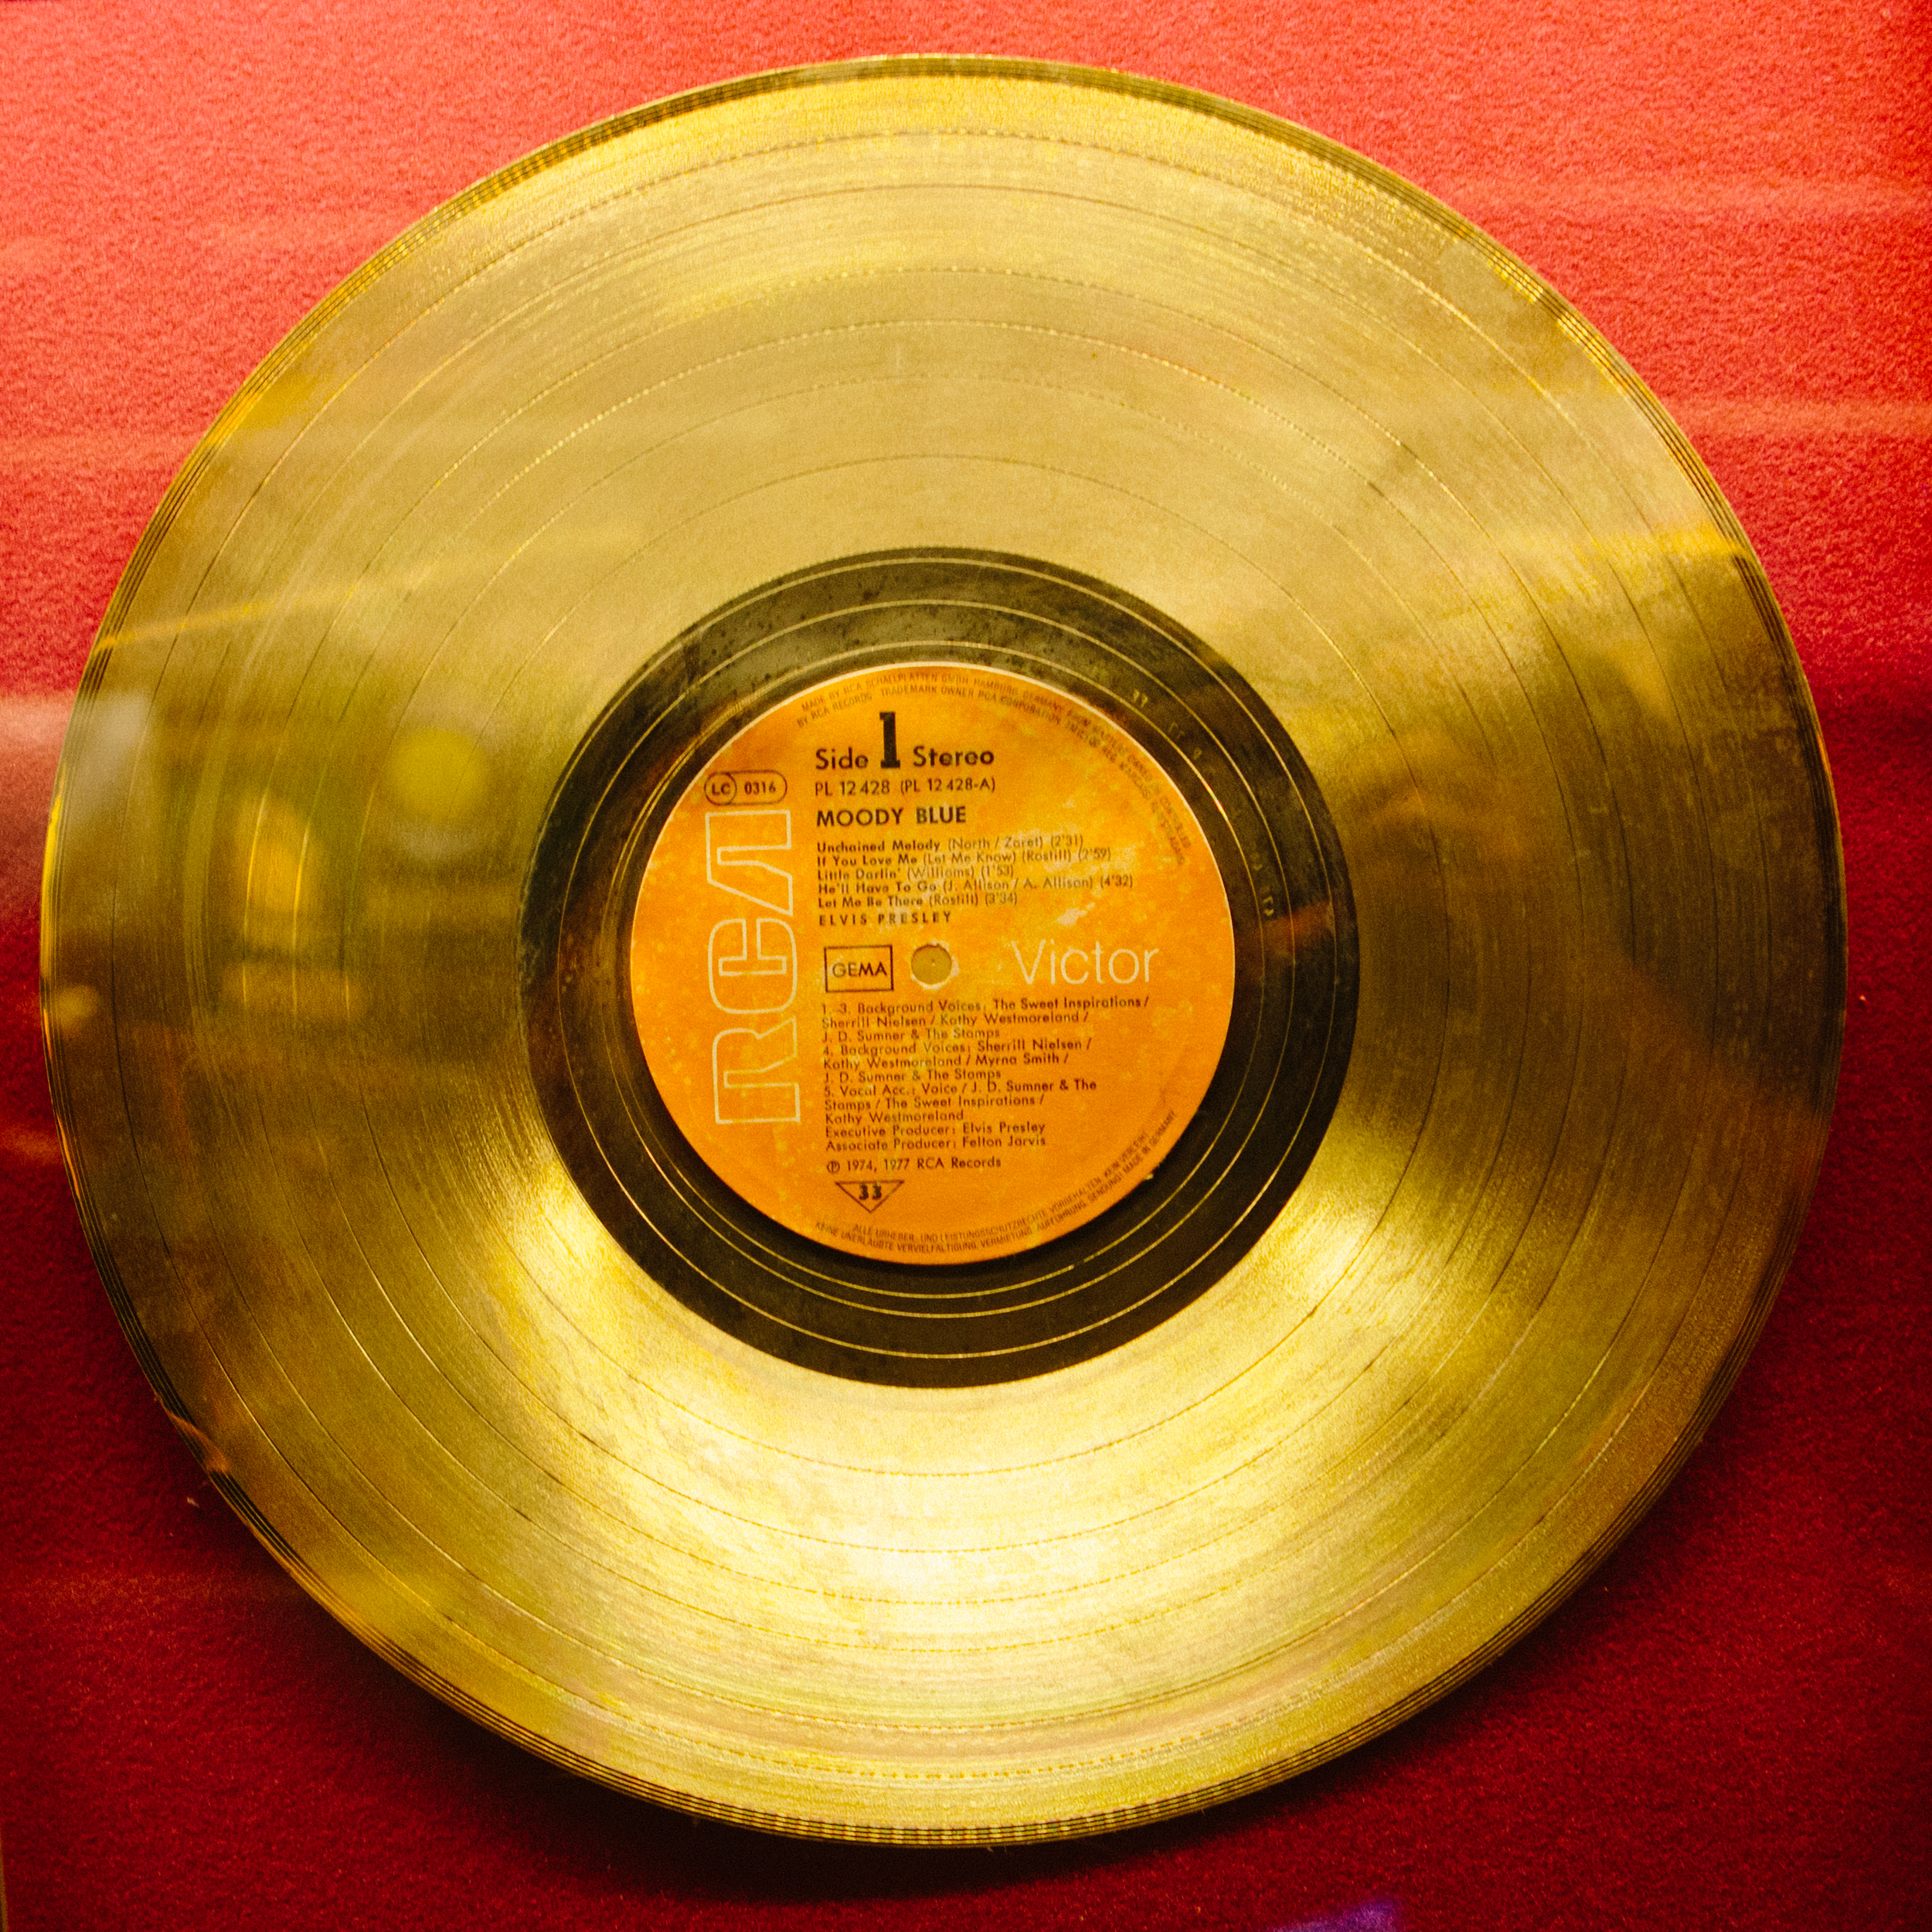 One of Many Gold Records